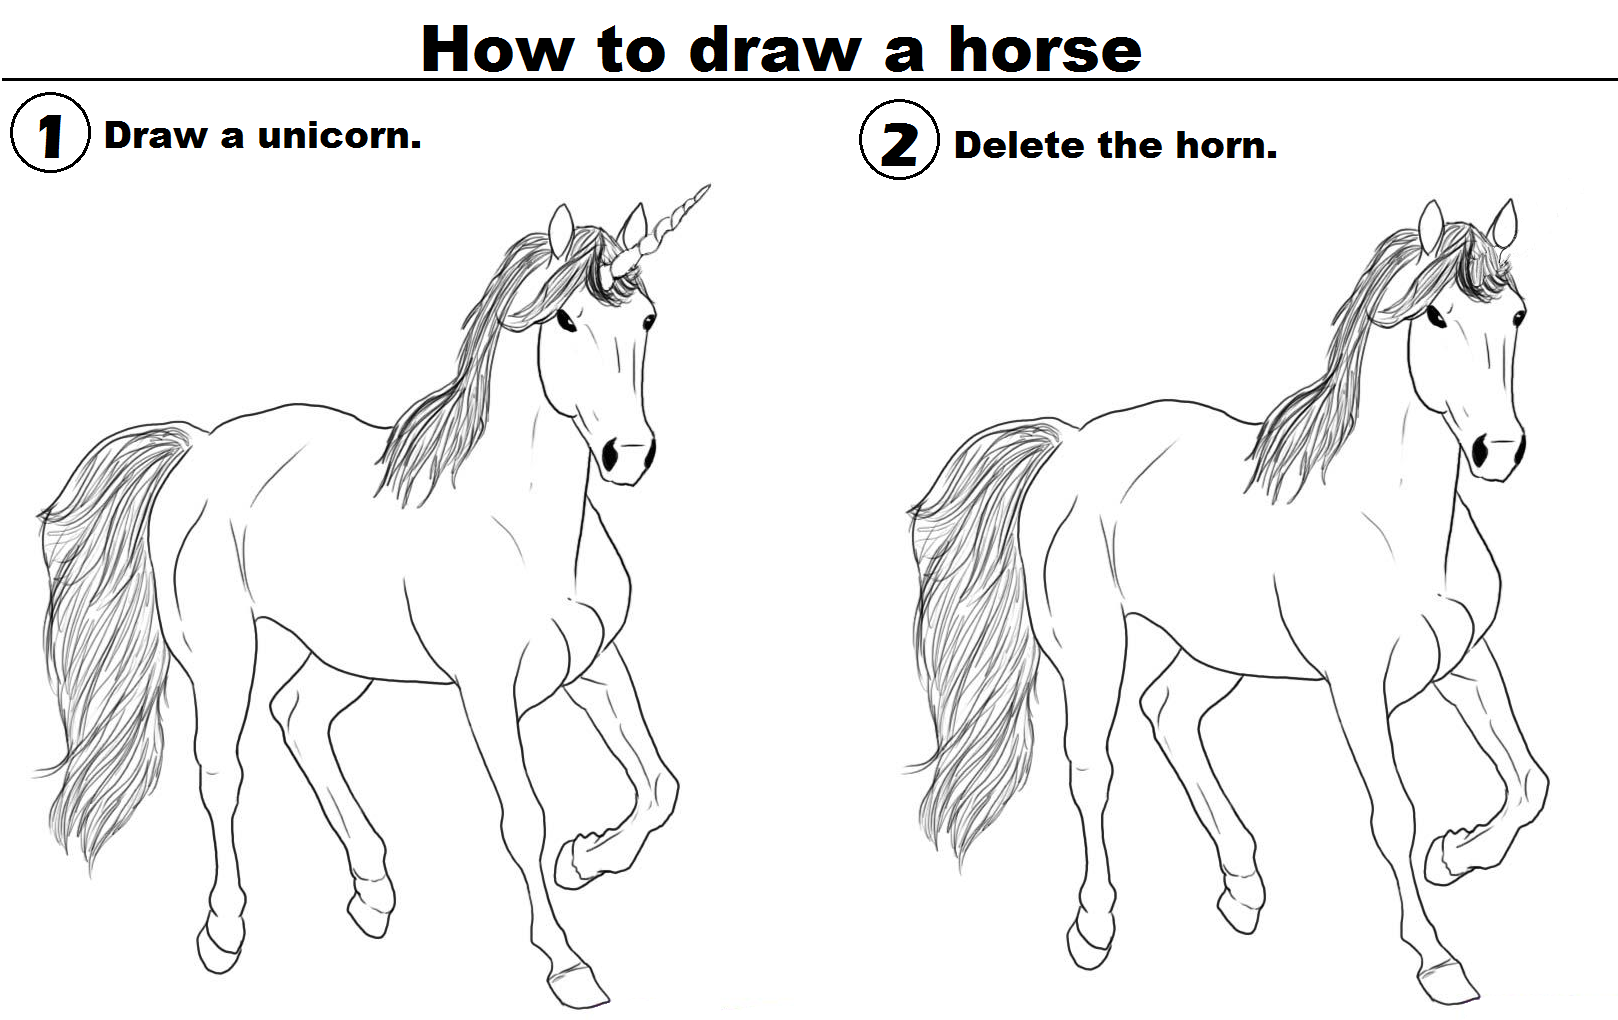 Drawn horse funny  to draw horse How